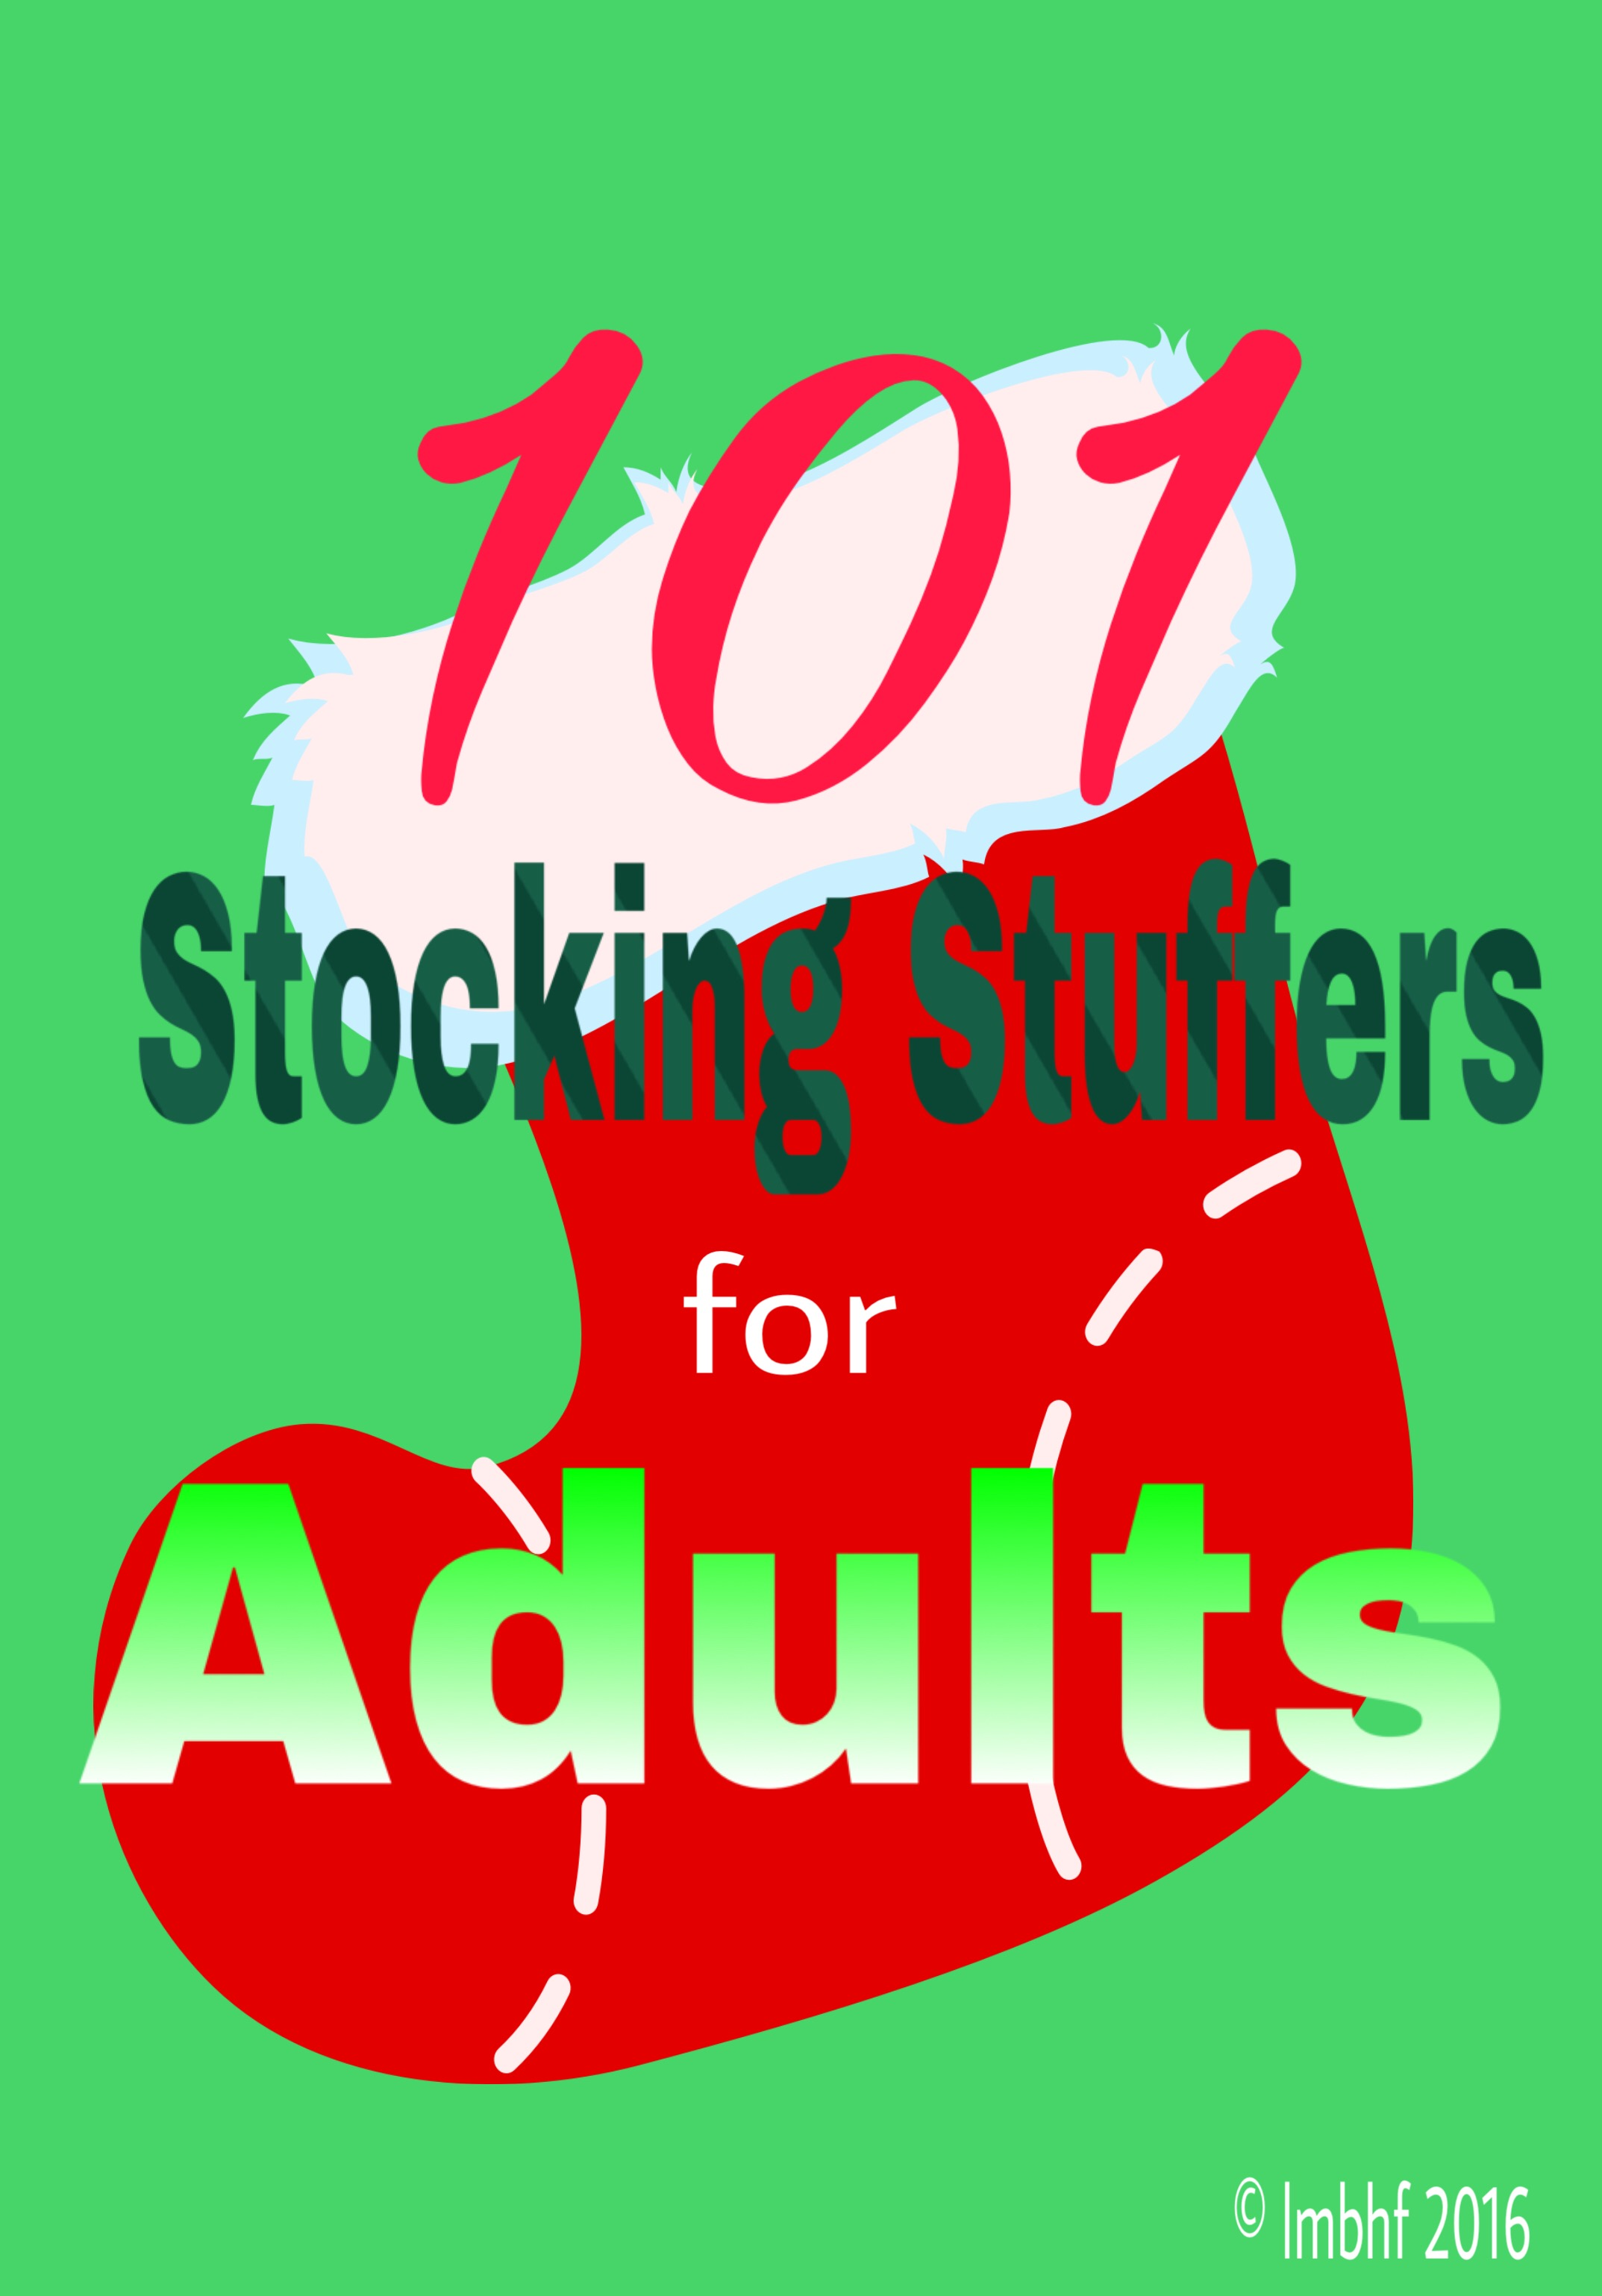 The Ultimate List Of Stocking Stuffer Ideas For Adults